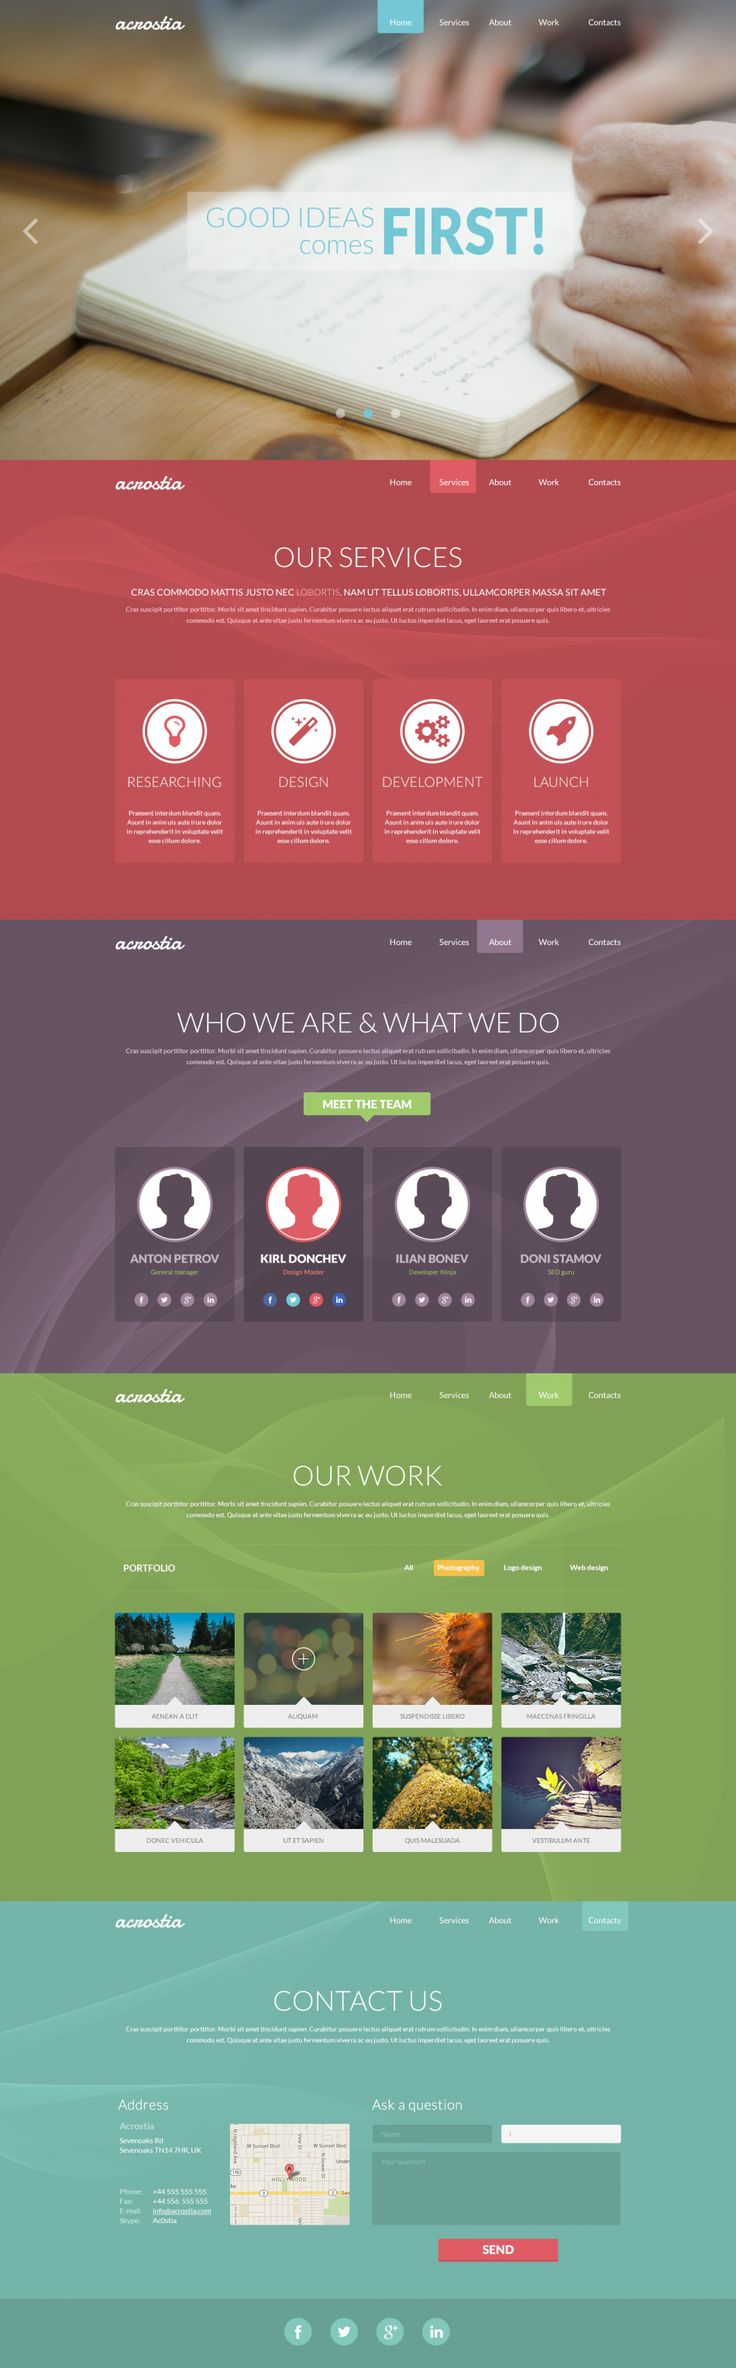 Acrostia - Free One Page Template, #Free, #Layout, #PSD, #Resource, #Single_Page, #Template, #Web #Design